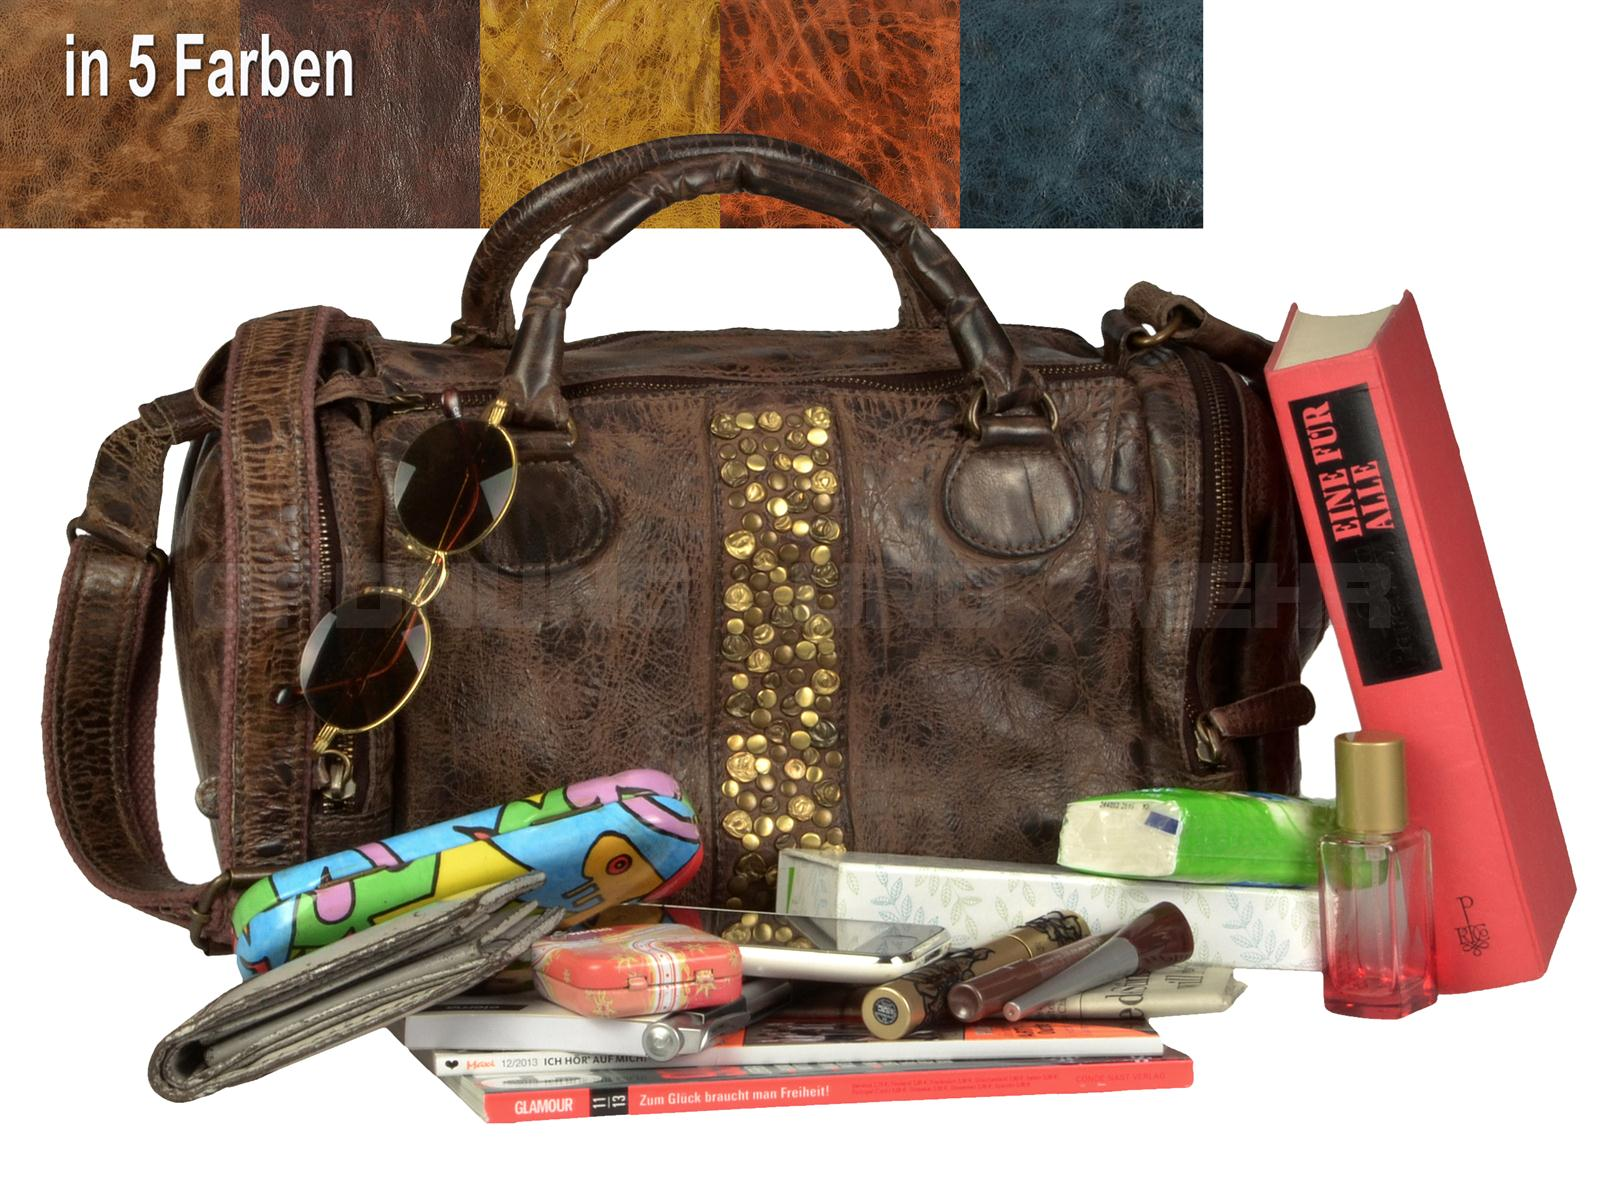 Modische Damentaschen aus Leder BILLY THE KID Modell EMMA Shopper mit Nieten Handtasche